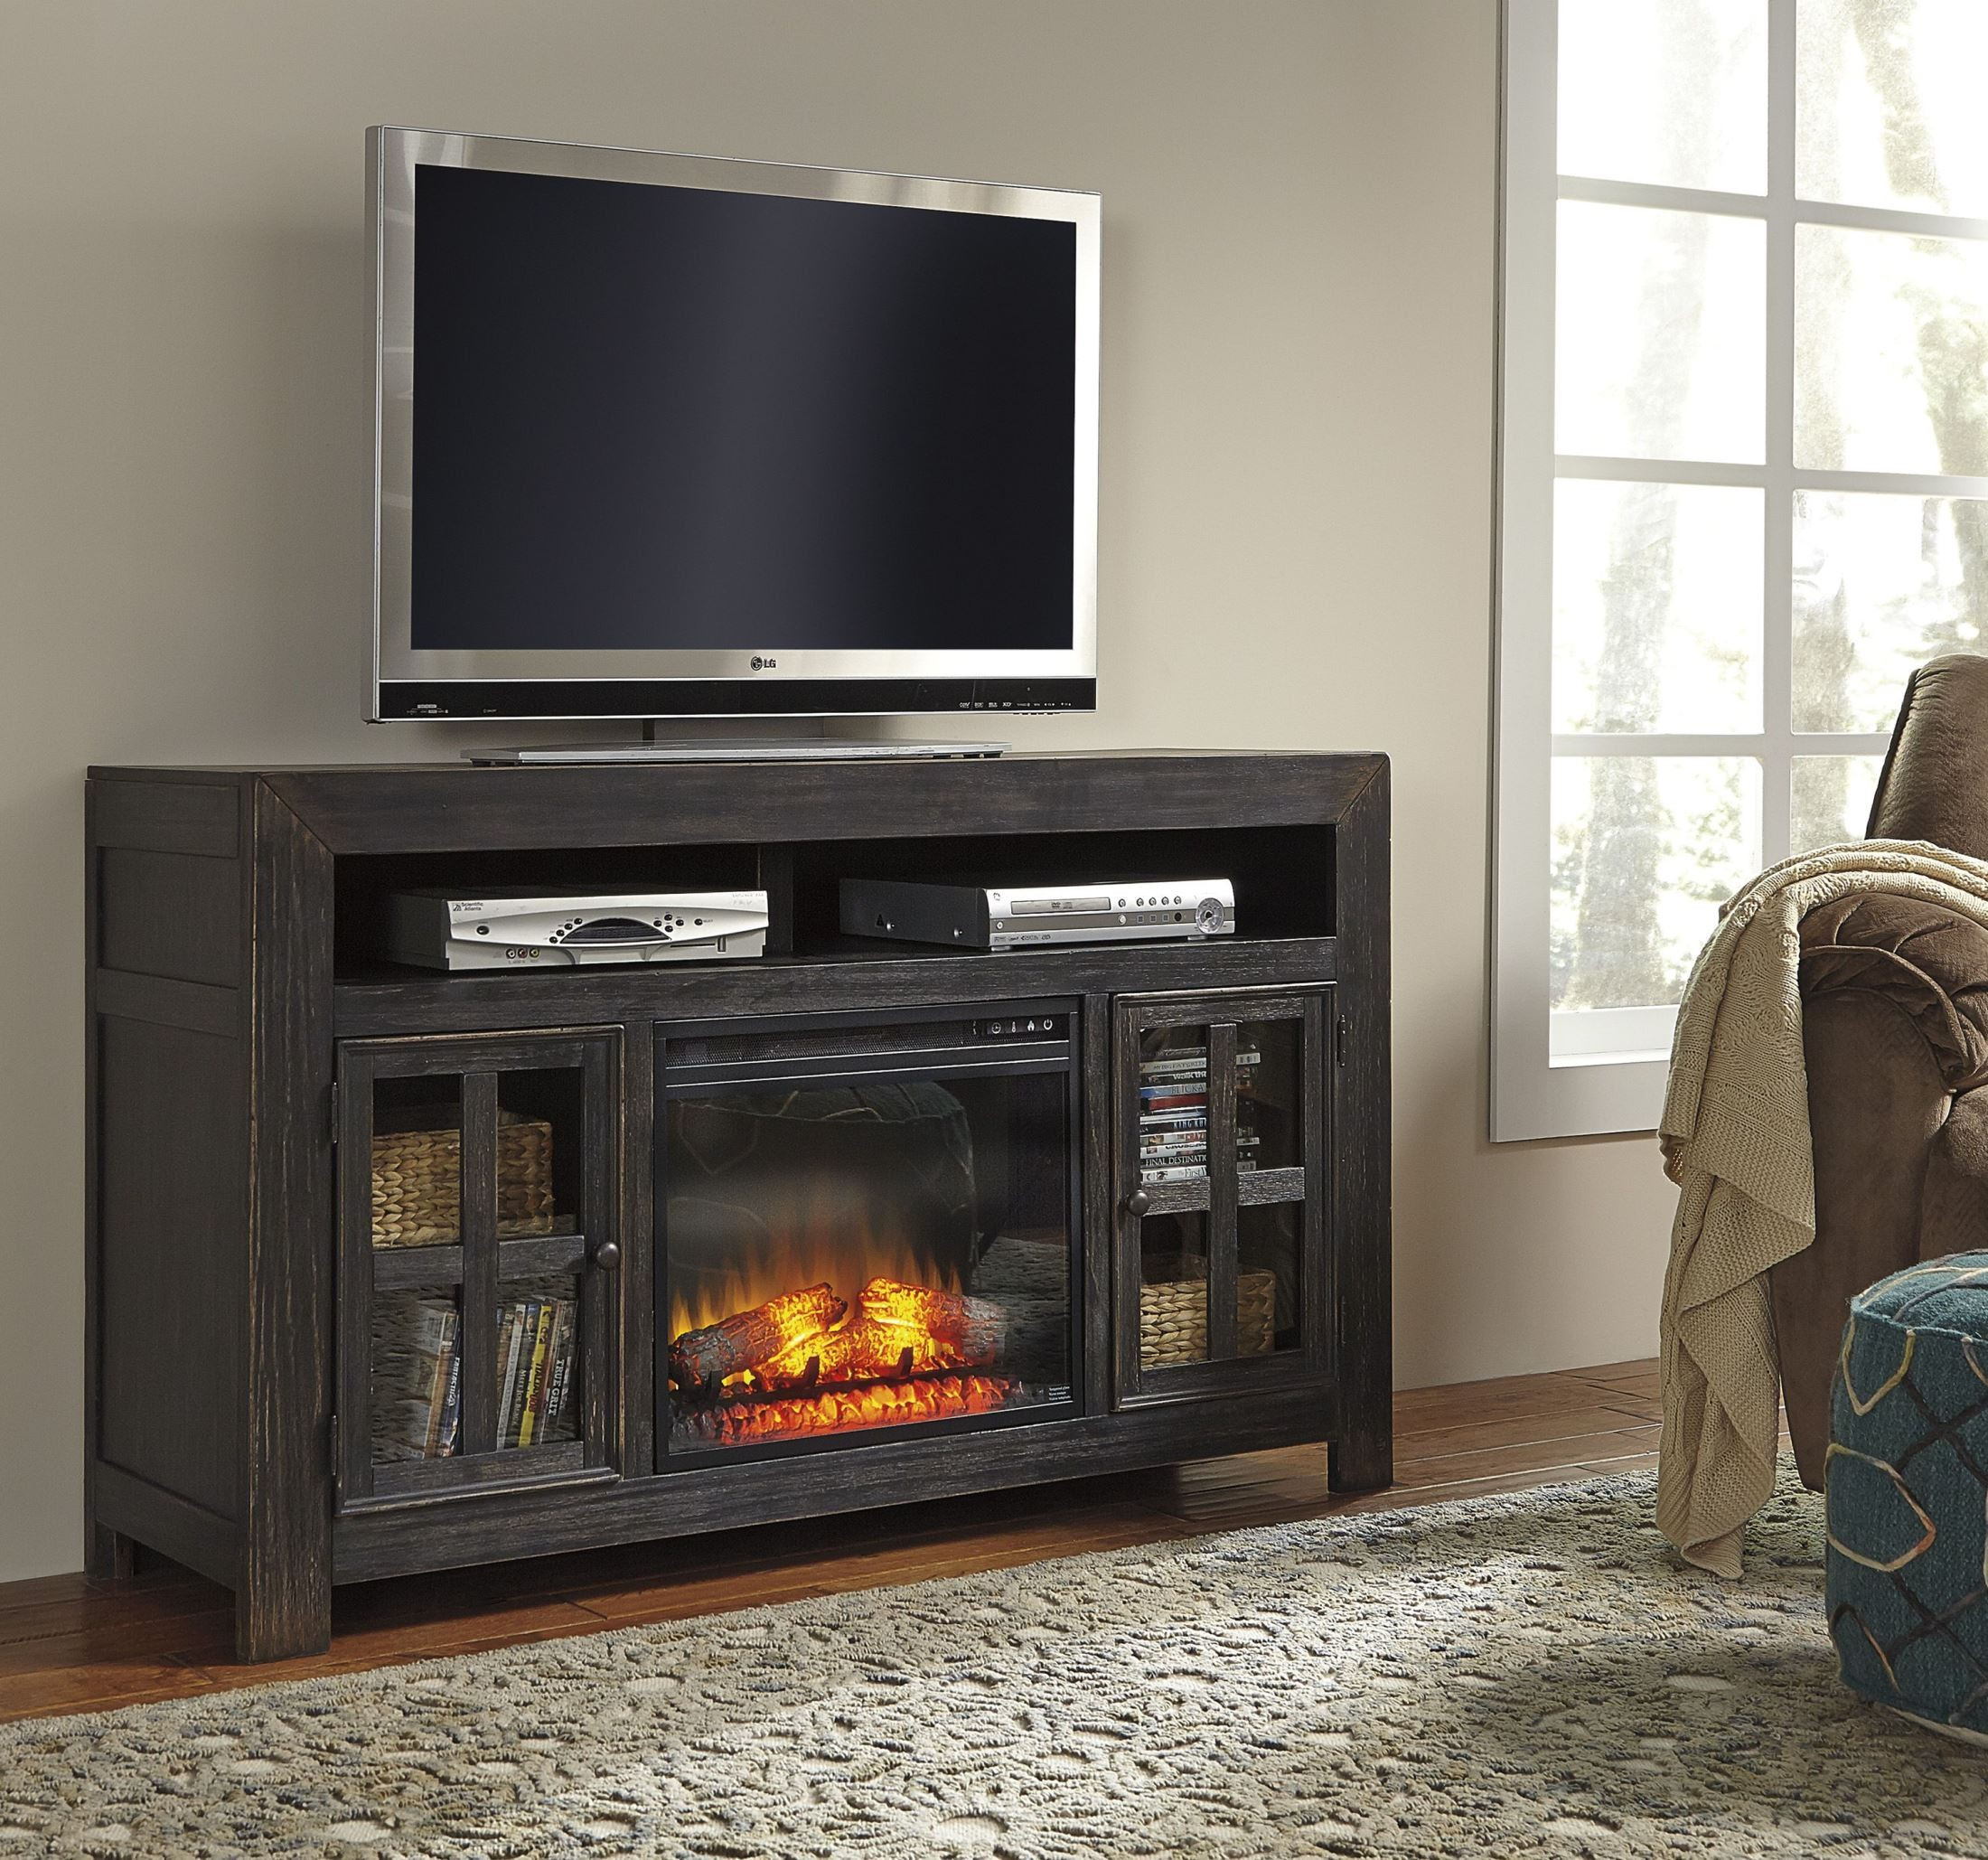 Gavelston Entertainment Wall With Fireplace Option From Ashley W732 38 23 24 25 Coleman